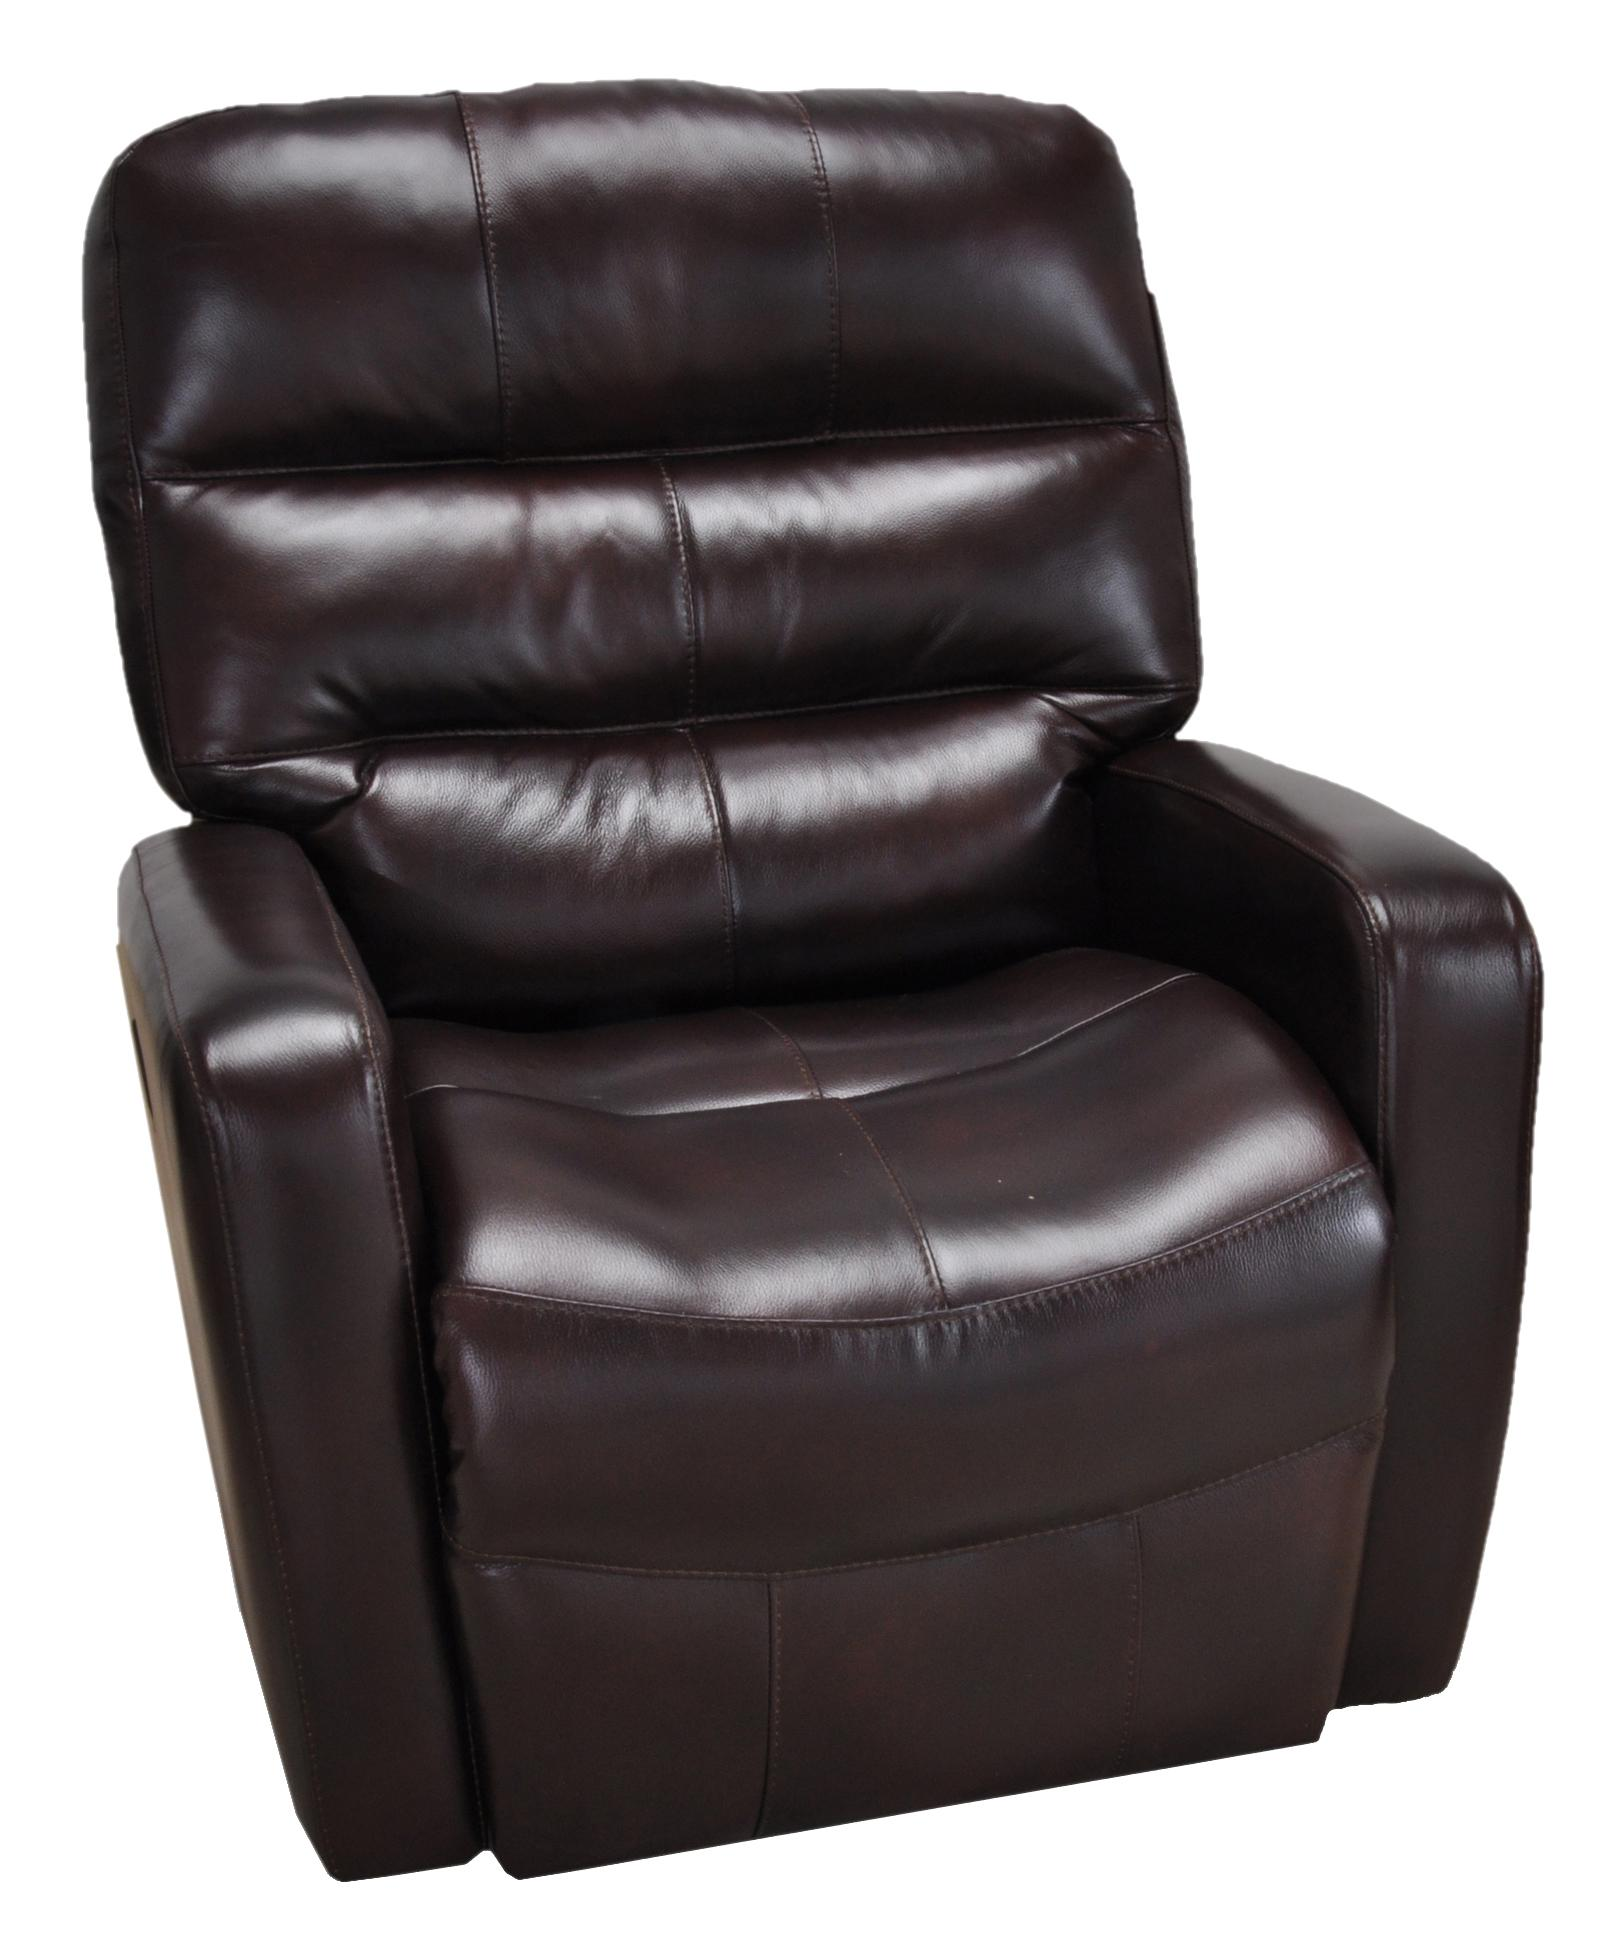 Franklin franklin recliners jetson rocker recliner with casual contemporary style miskelly - Stylish rocker recliner ...